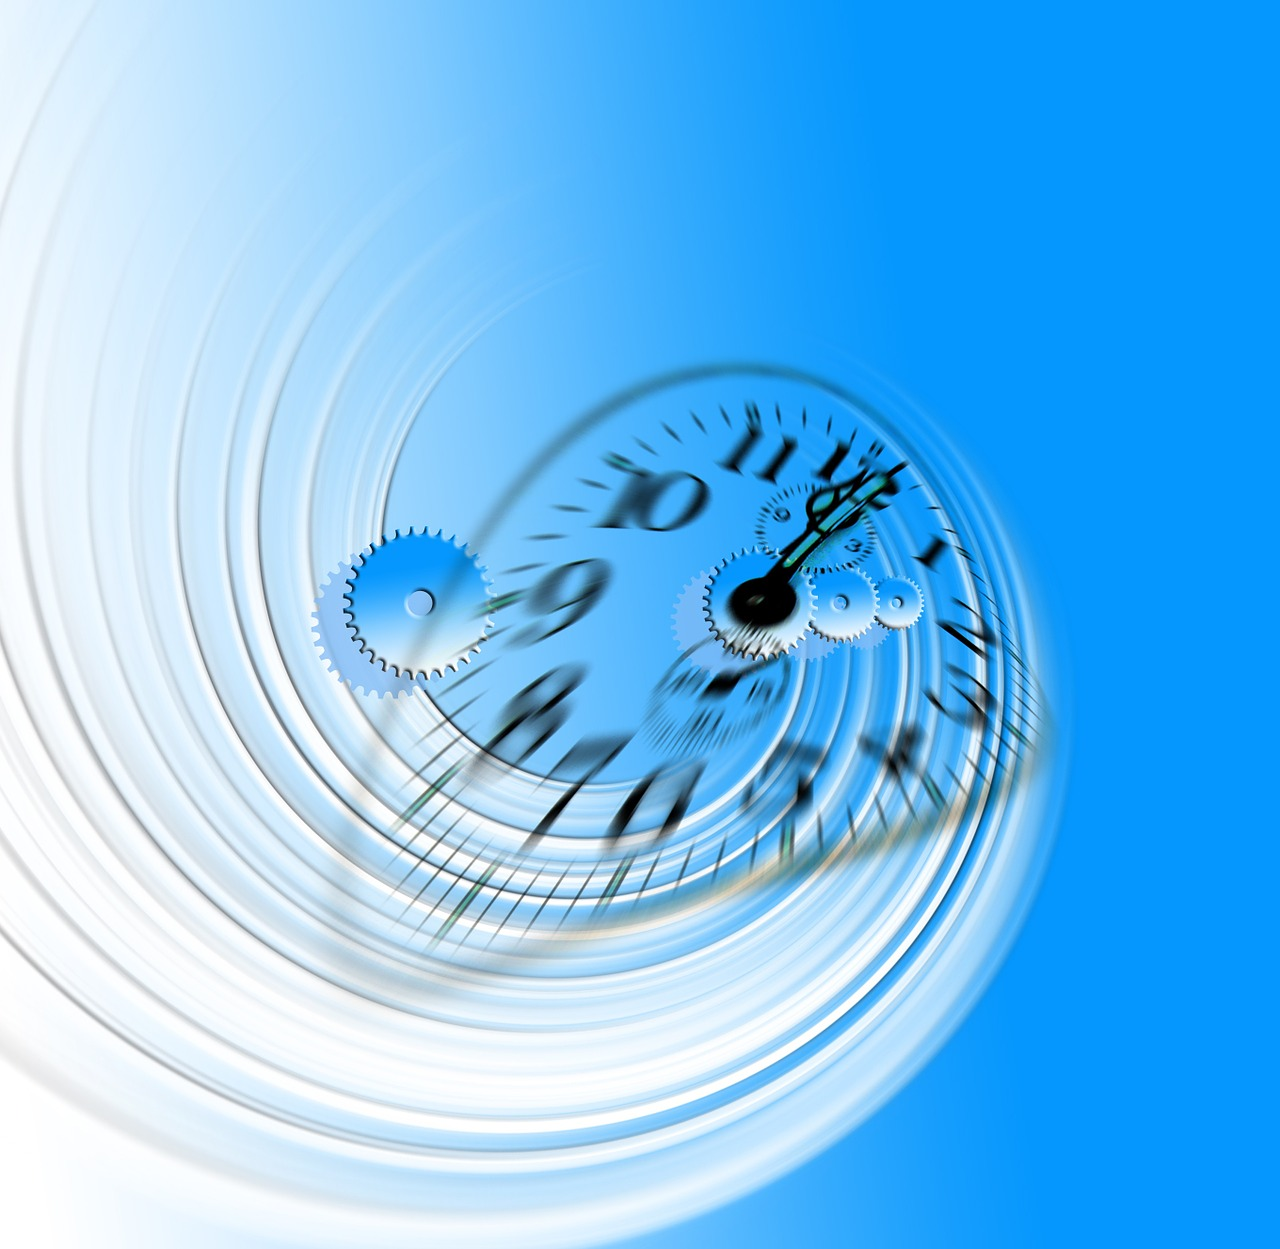 A Smarter Approach to Time Management